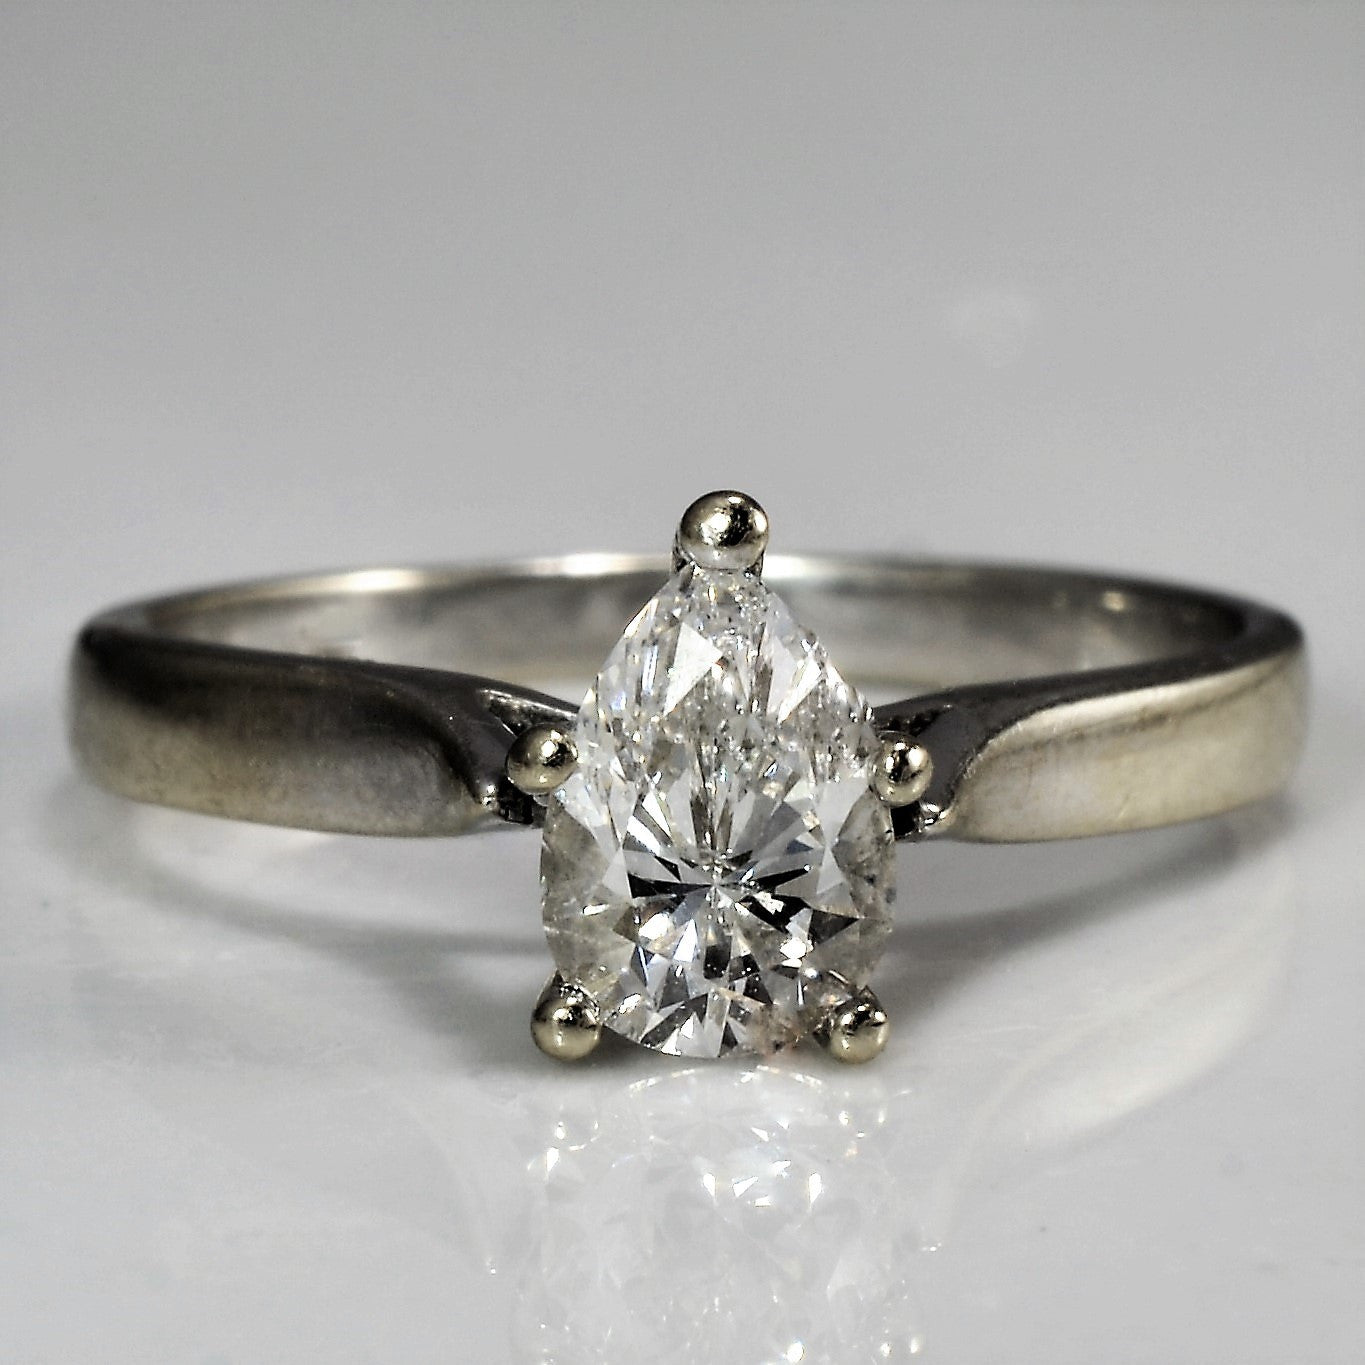 Tapered Pear Cut Engagement Ring | 0.52 ct, SZ 6.75 |